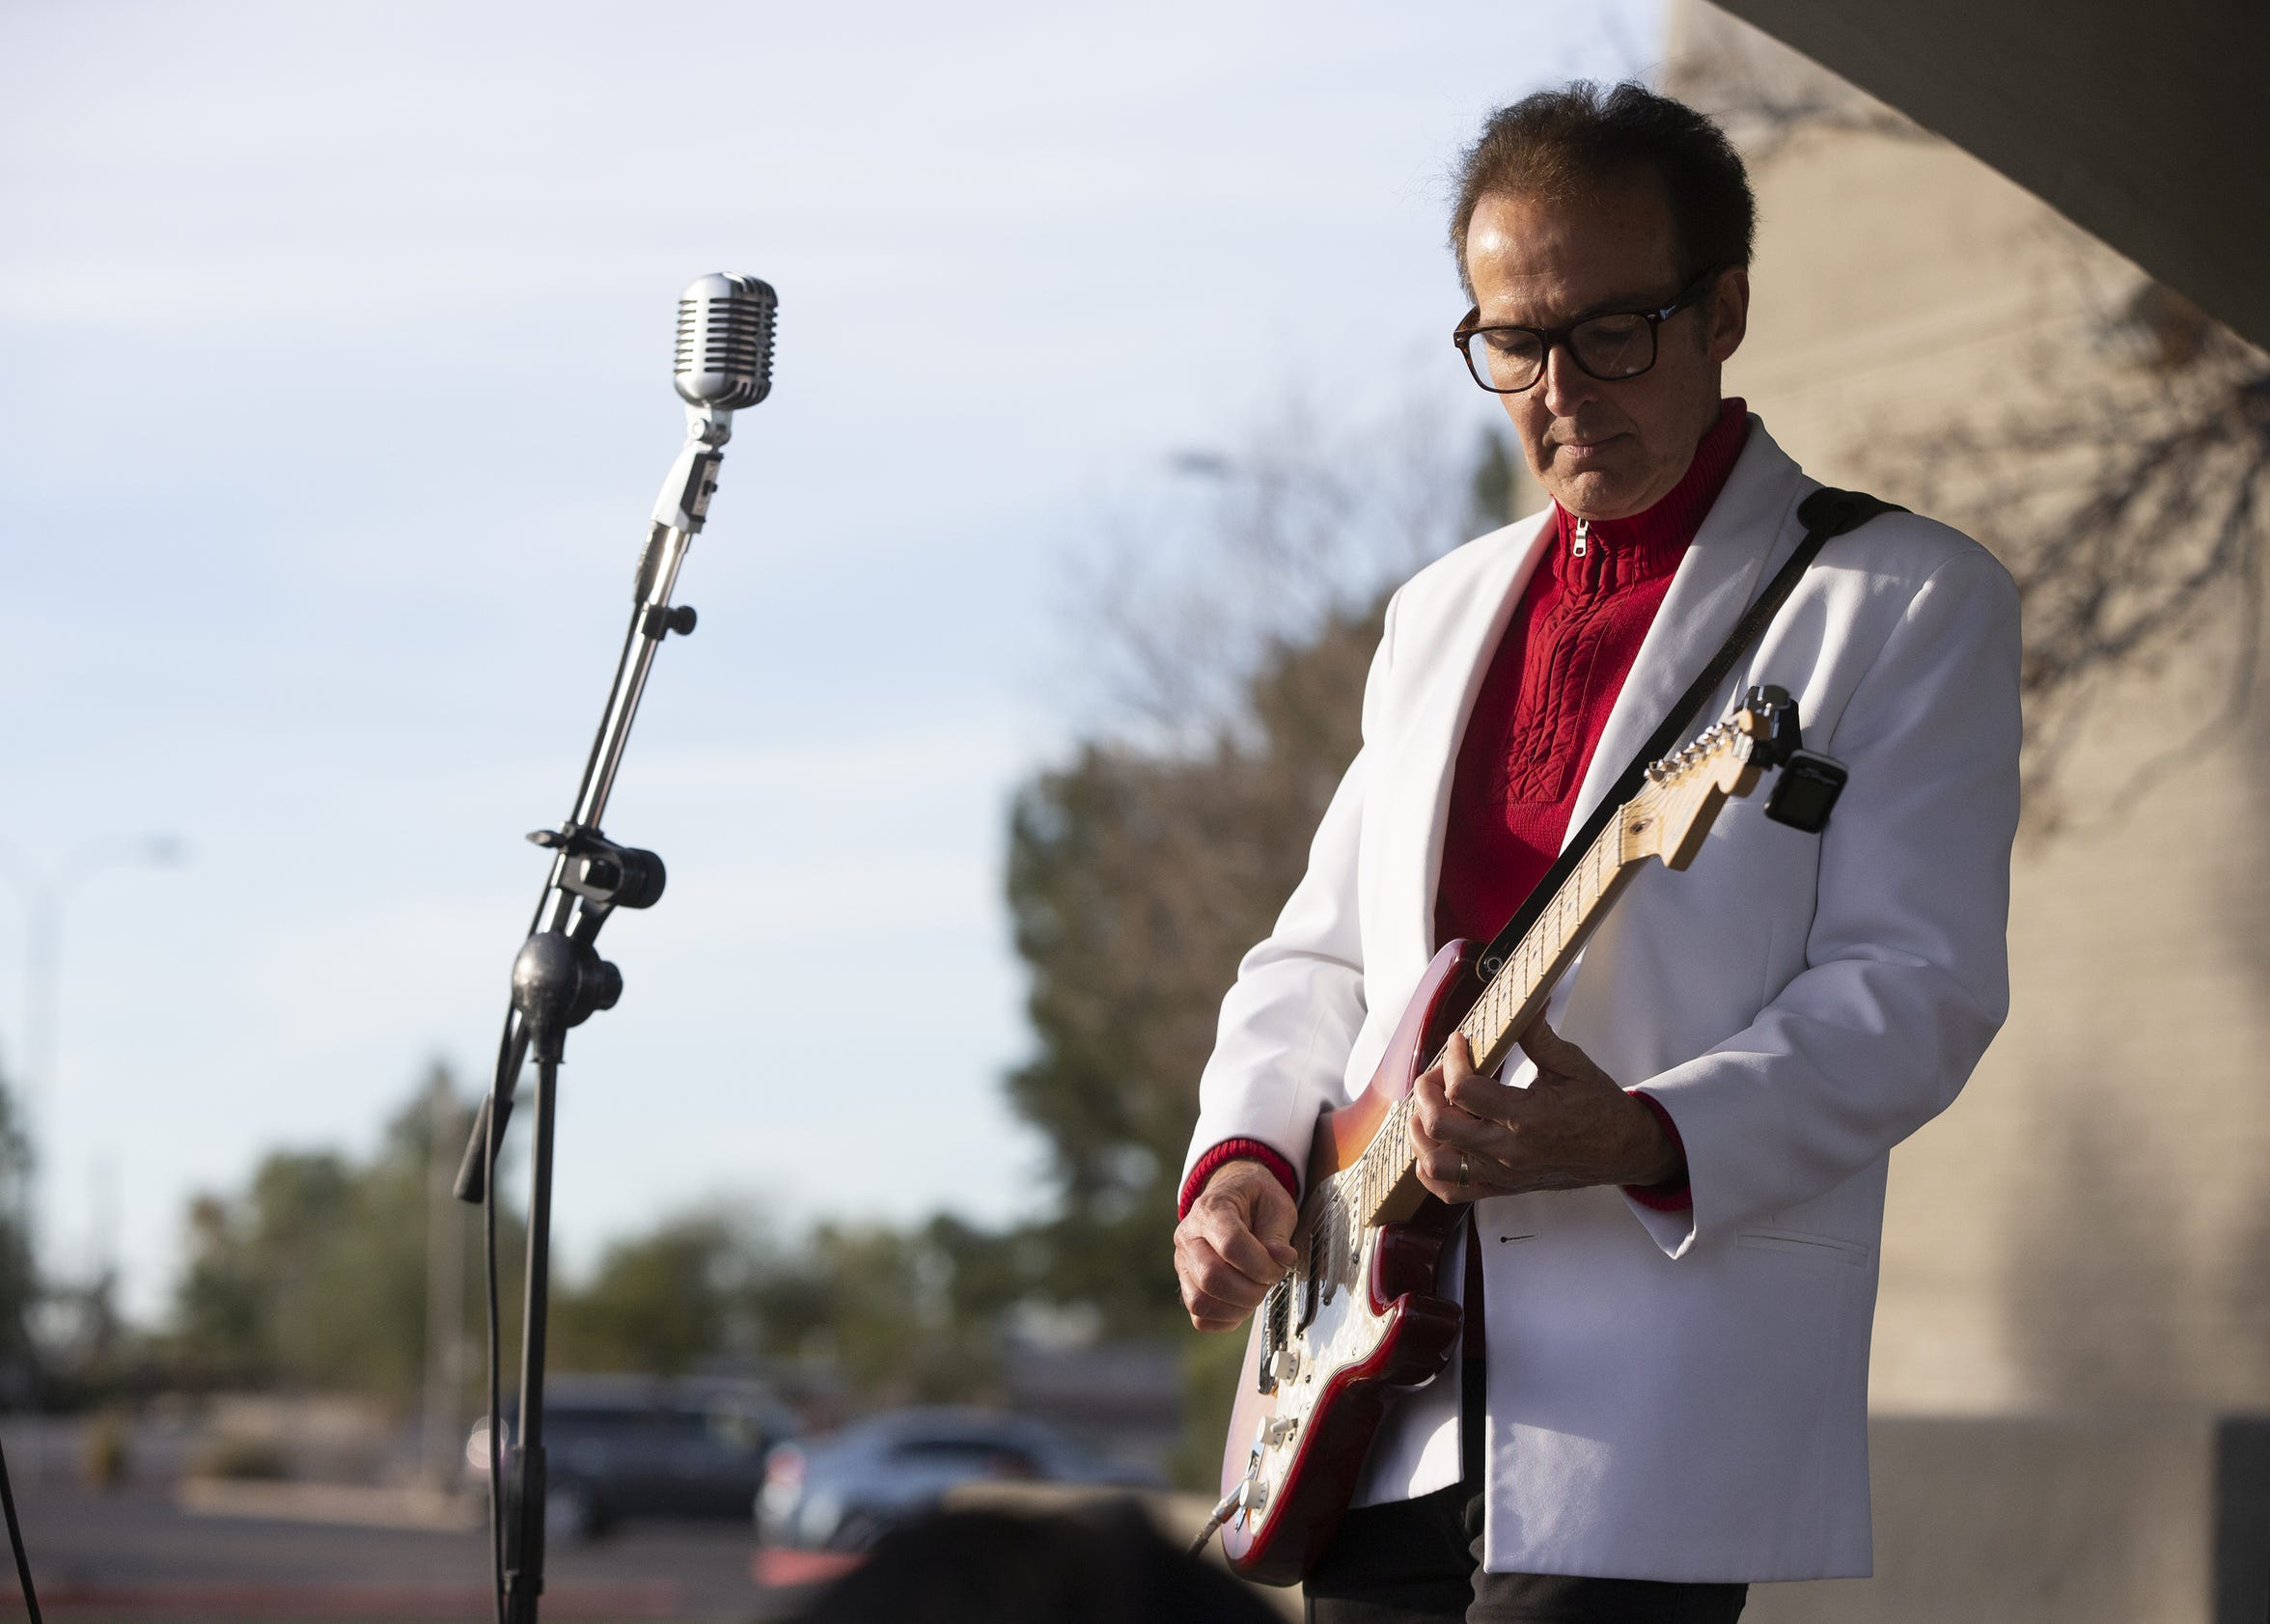 Come Back Buddy vocalist Mike Randall performs for the runners during Humana Rock 'n' Roll half marathon in on January 20, 2019.